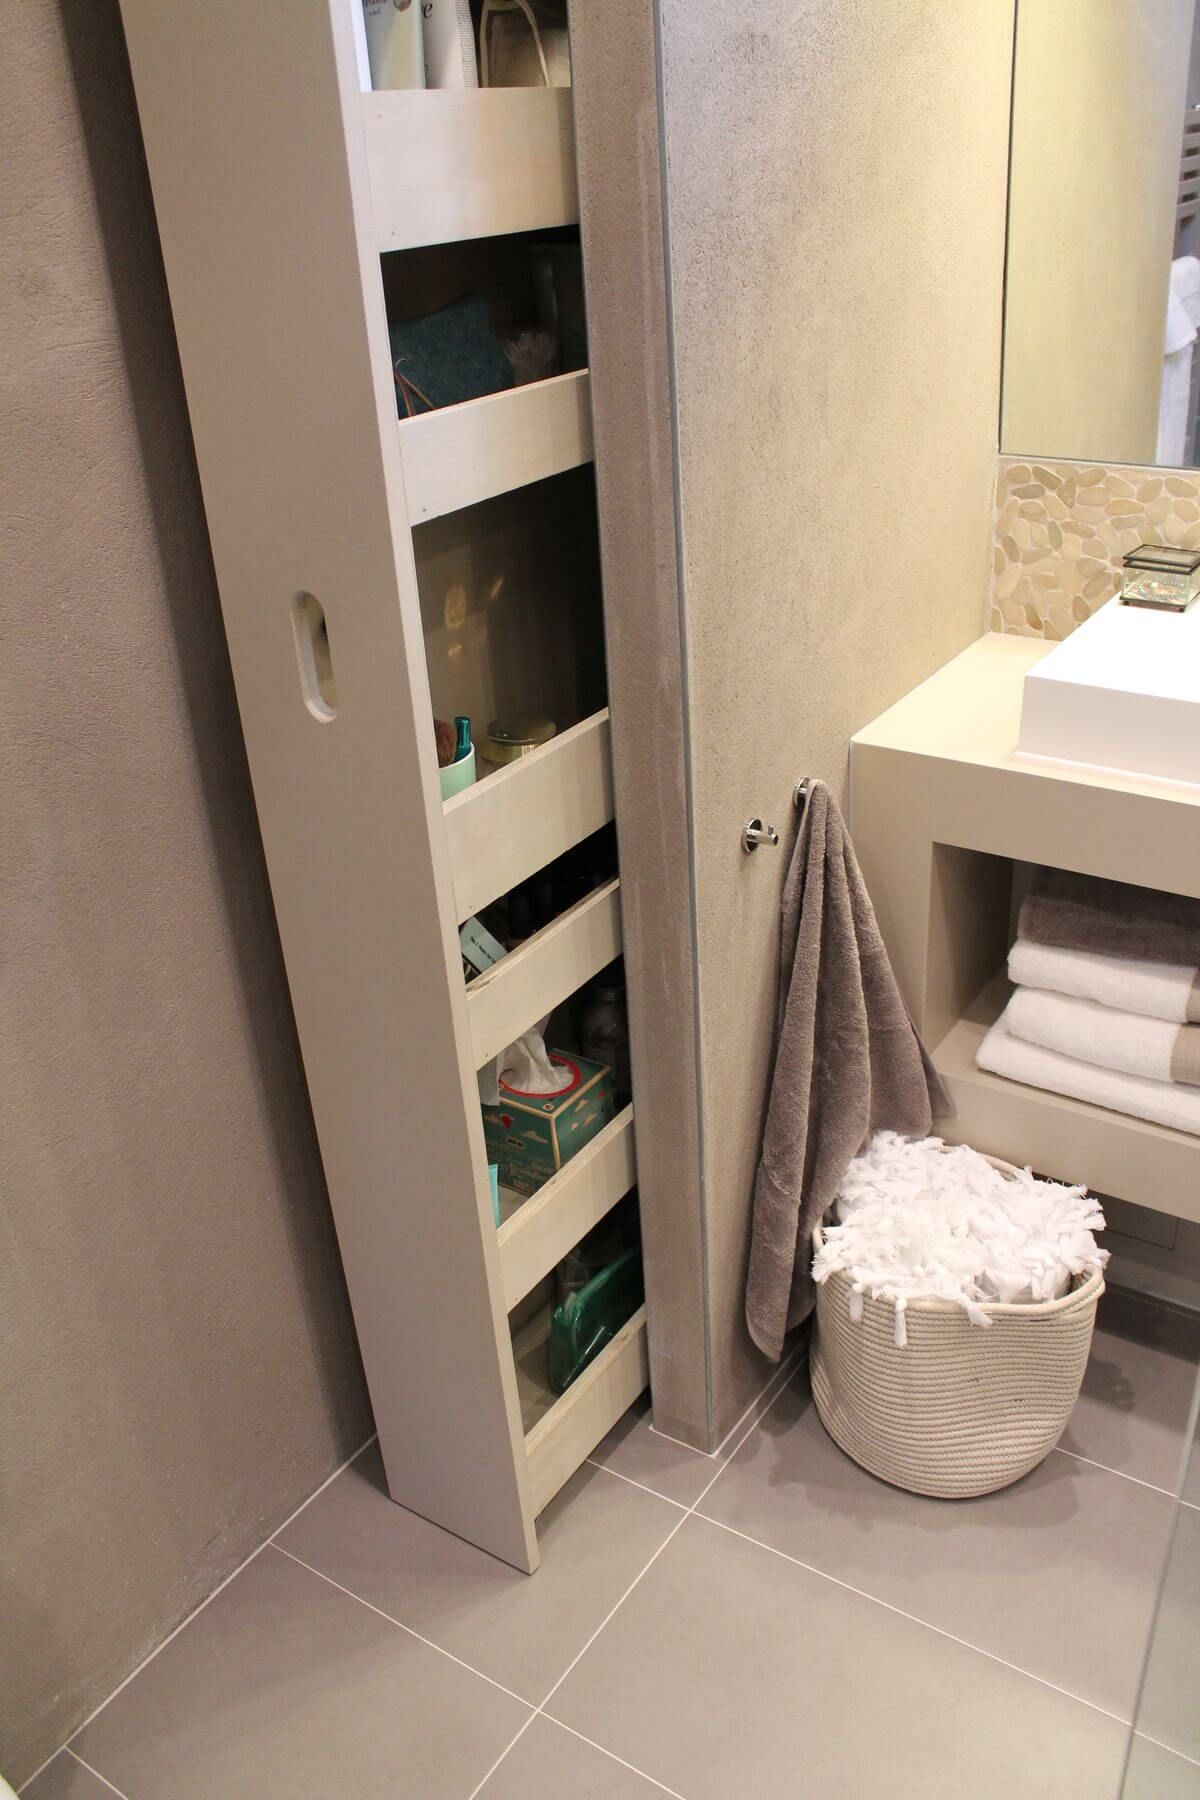 25 Fabulous Built In Storage Ideas To Maximize Your Living Space